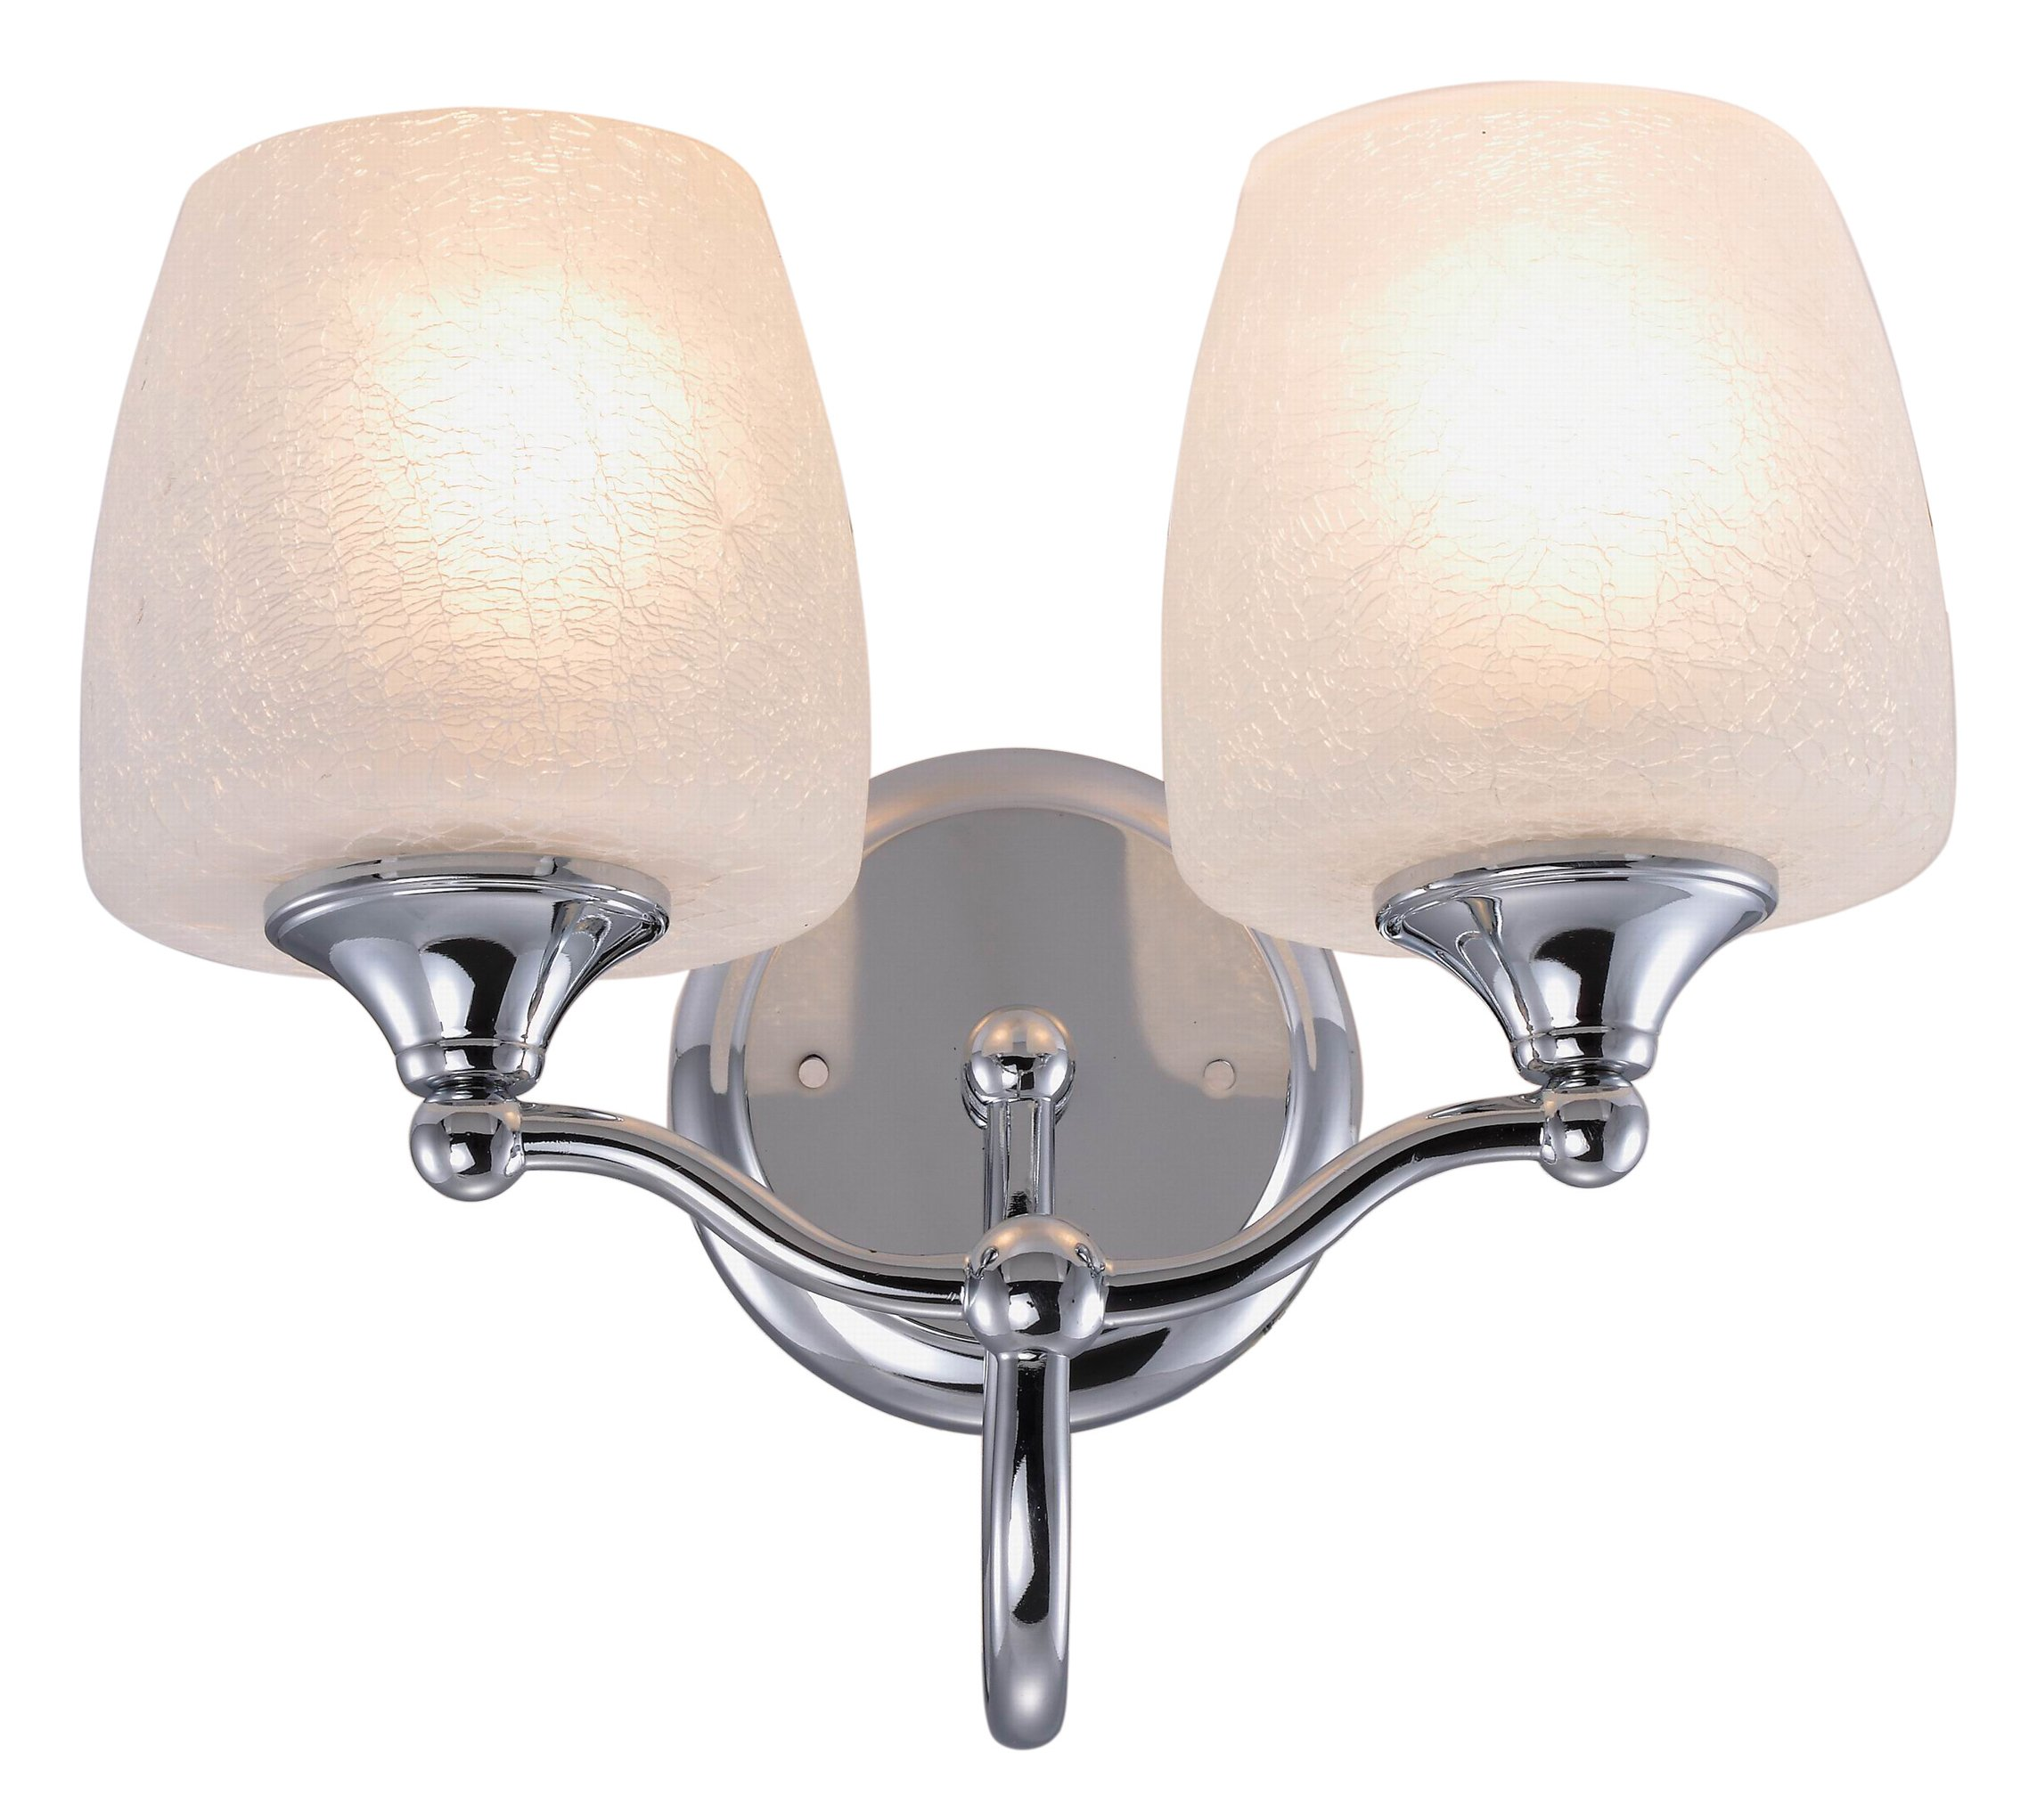 Yosemite Home Decor 1031-2CH 2-Light Bathroom Vanity, Chrome - Width 12.13-Inch by height 10-Inch by depth 7.5-Inch Requires (2) medium-based, 100-Watt incandescent bulbs (not included) Chrome frame with crackle frosted glass - bathroom-lights, bathroom-fixtures-hardware, bathroom - 81iur52J3QL -